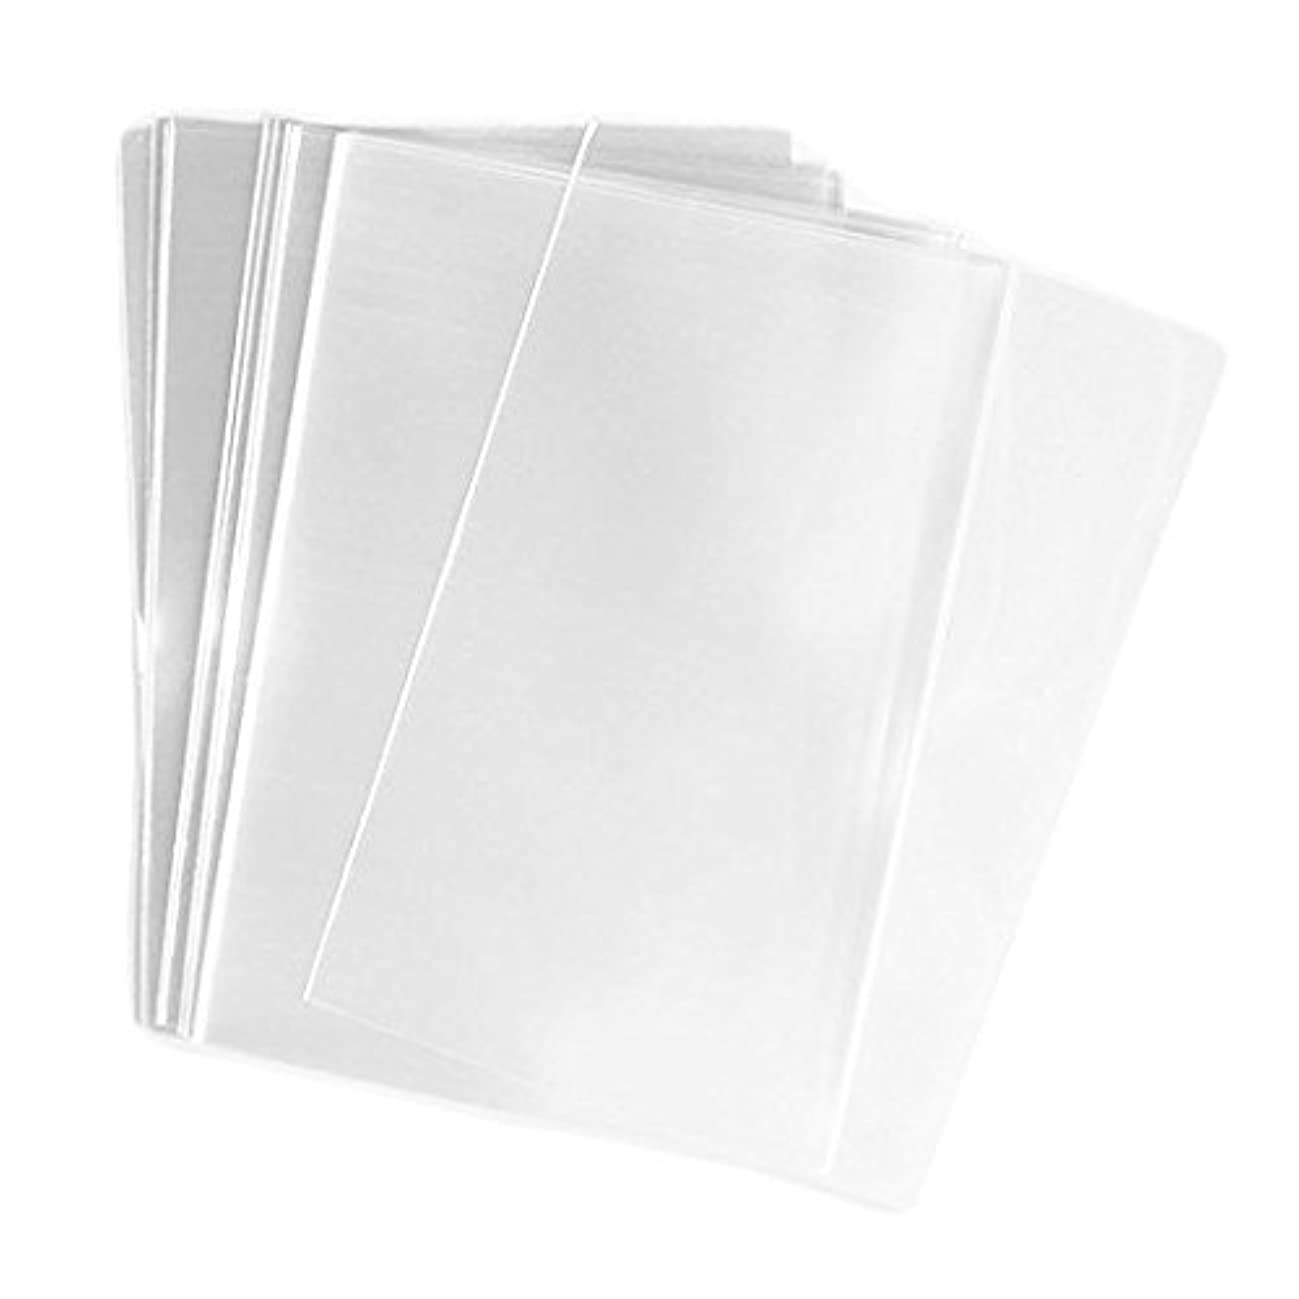 OkieOkie Cellophane Bags Good for Bakery Candle Soap Cookie(Flat 100 Pcs 3 X 5 (O) Clear Flat Cello / Cellophane Bag)